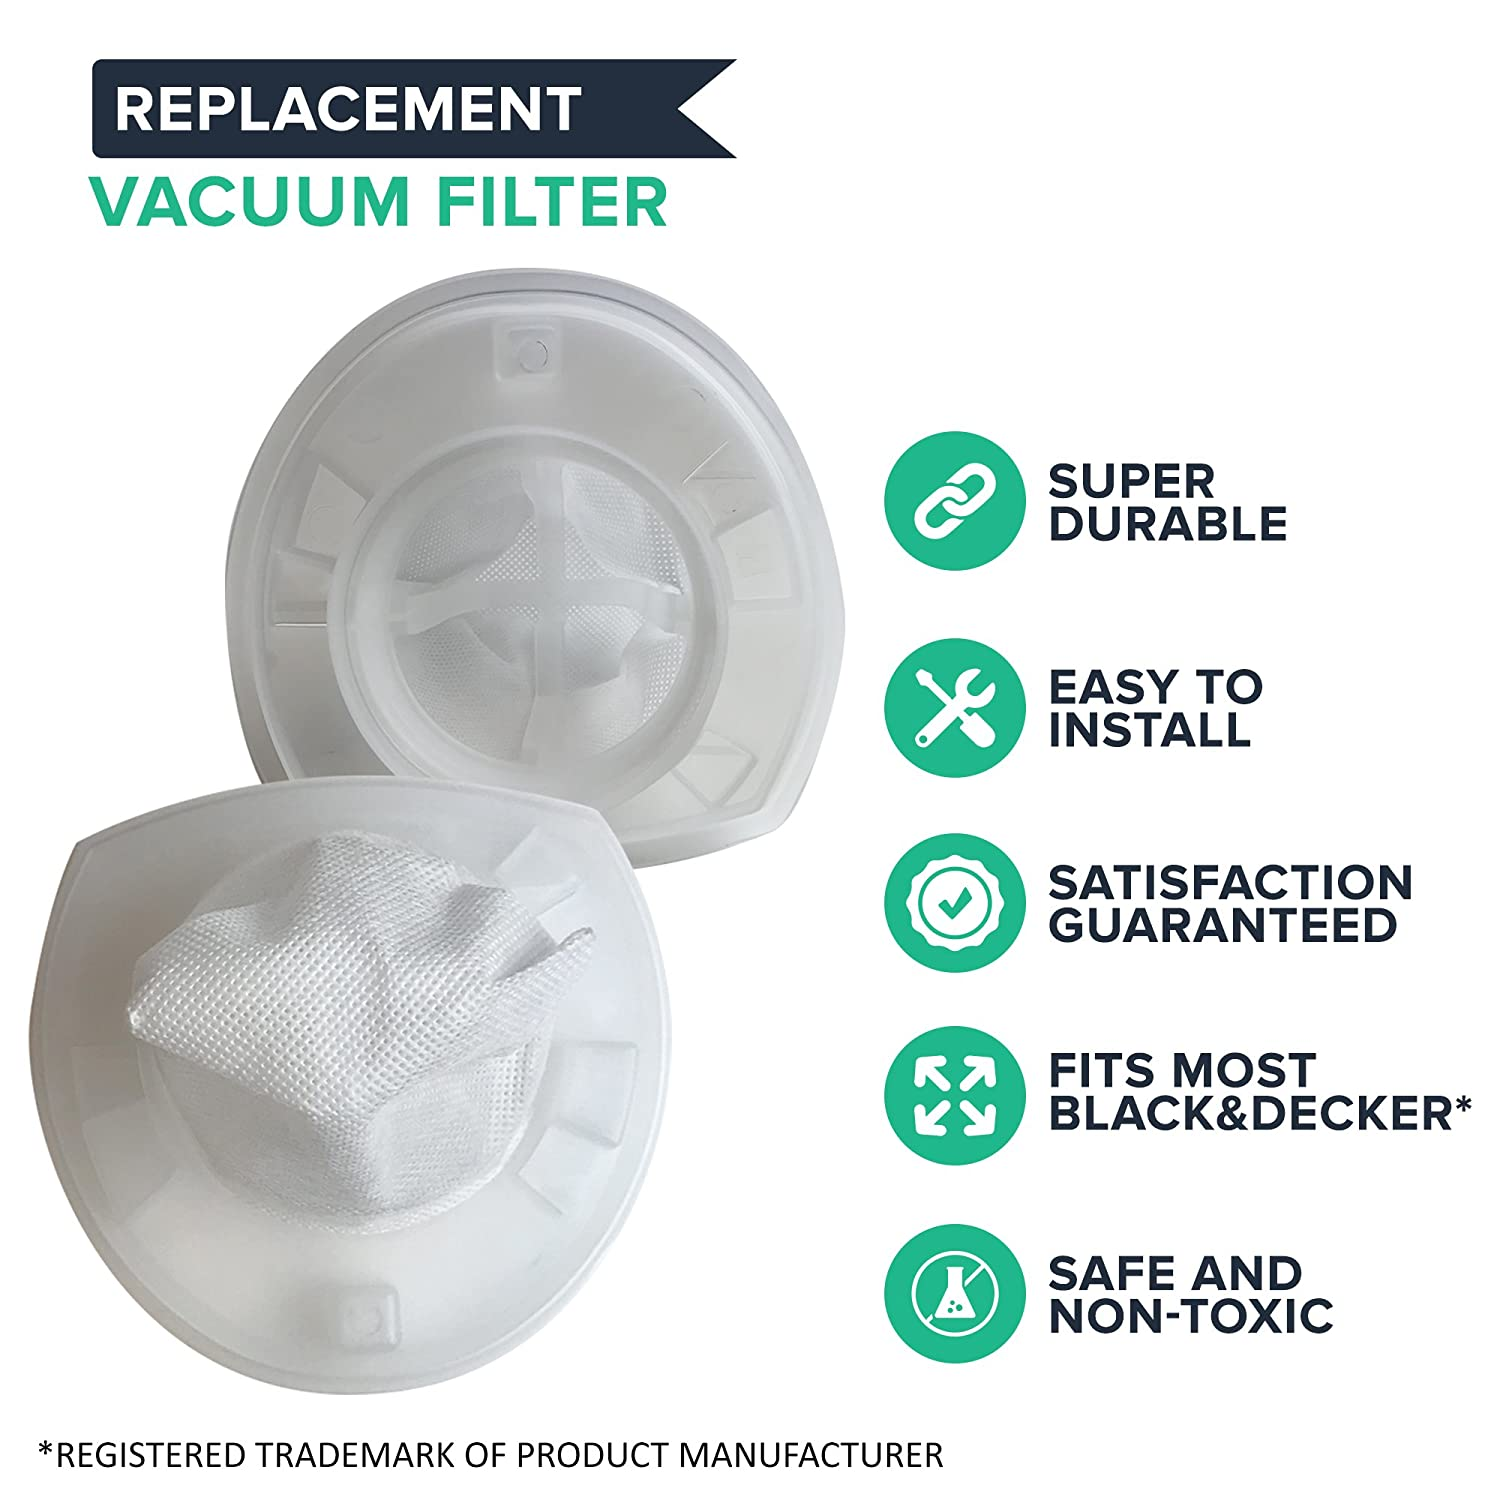 Think Crucial Replacement Air Filters - Compatible with Black & Decker Hand Vacuum Air Filter Part - Pair with Parts #VF110 VF110H 90558113-01 - Fits ...